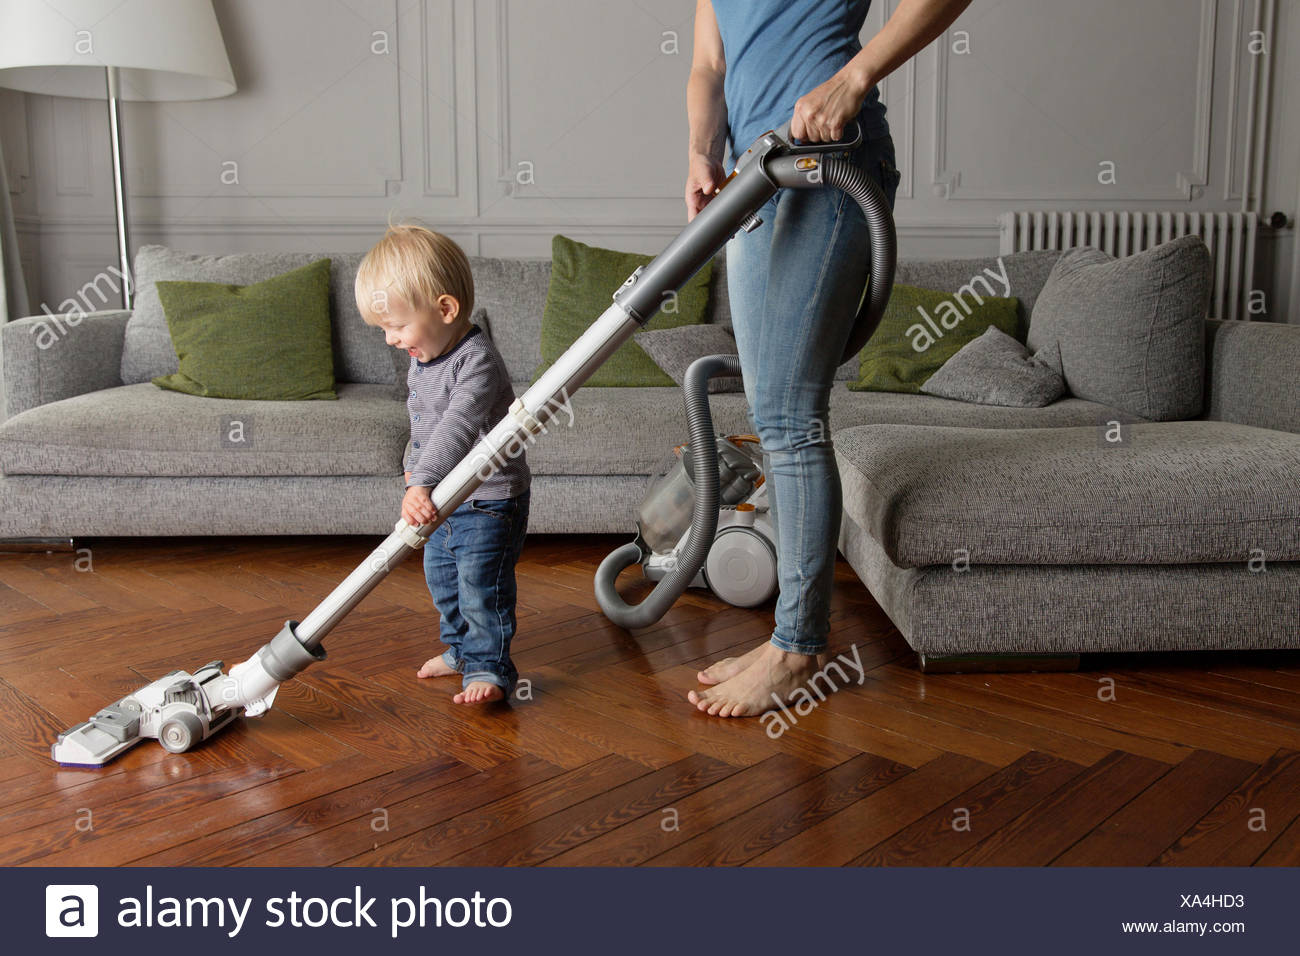 Laughing toddler helping his mother hoovering wooden floor - Stock Image